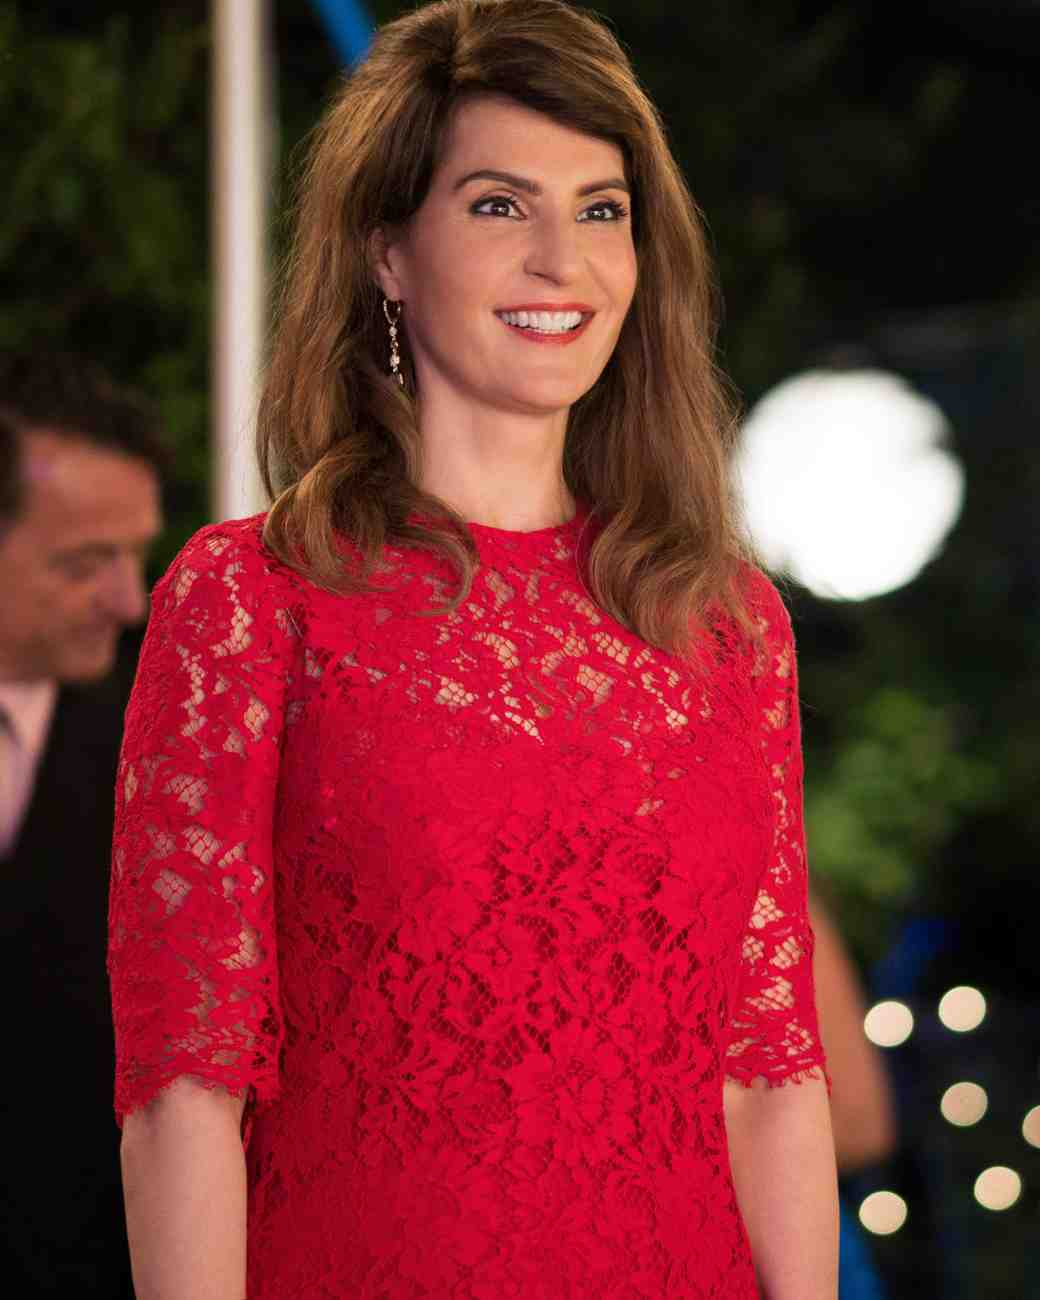 """Nia Vardalos's Dos and Don'ts for Throwing a """"Big Fat Greek Wedding"""" of Your Own!"""